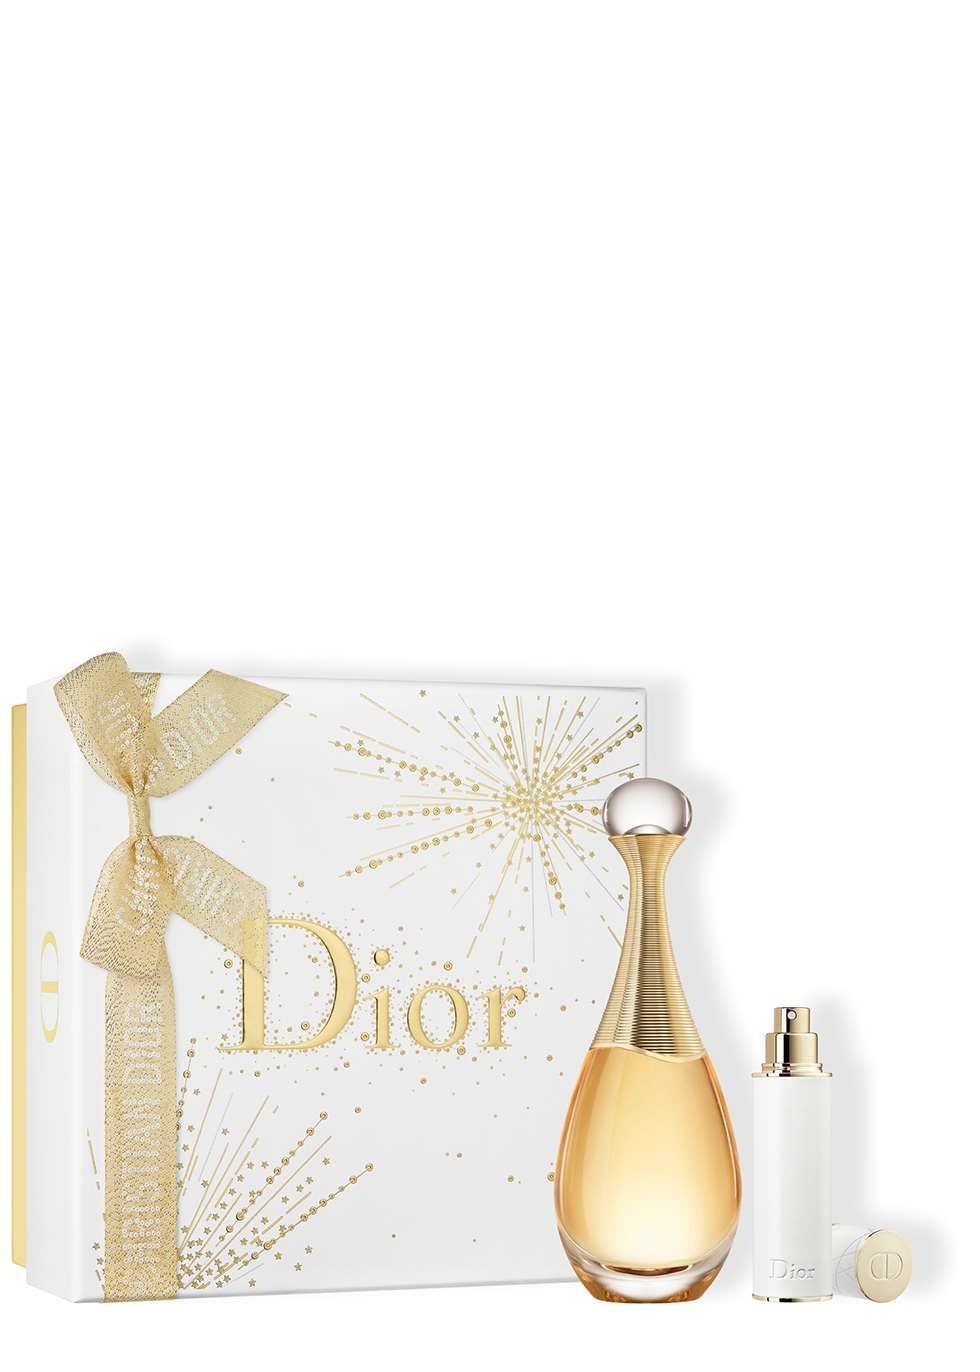 J'adore Eau De Parfum Gift Set 100ml by Dior